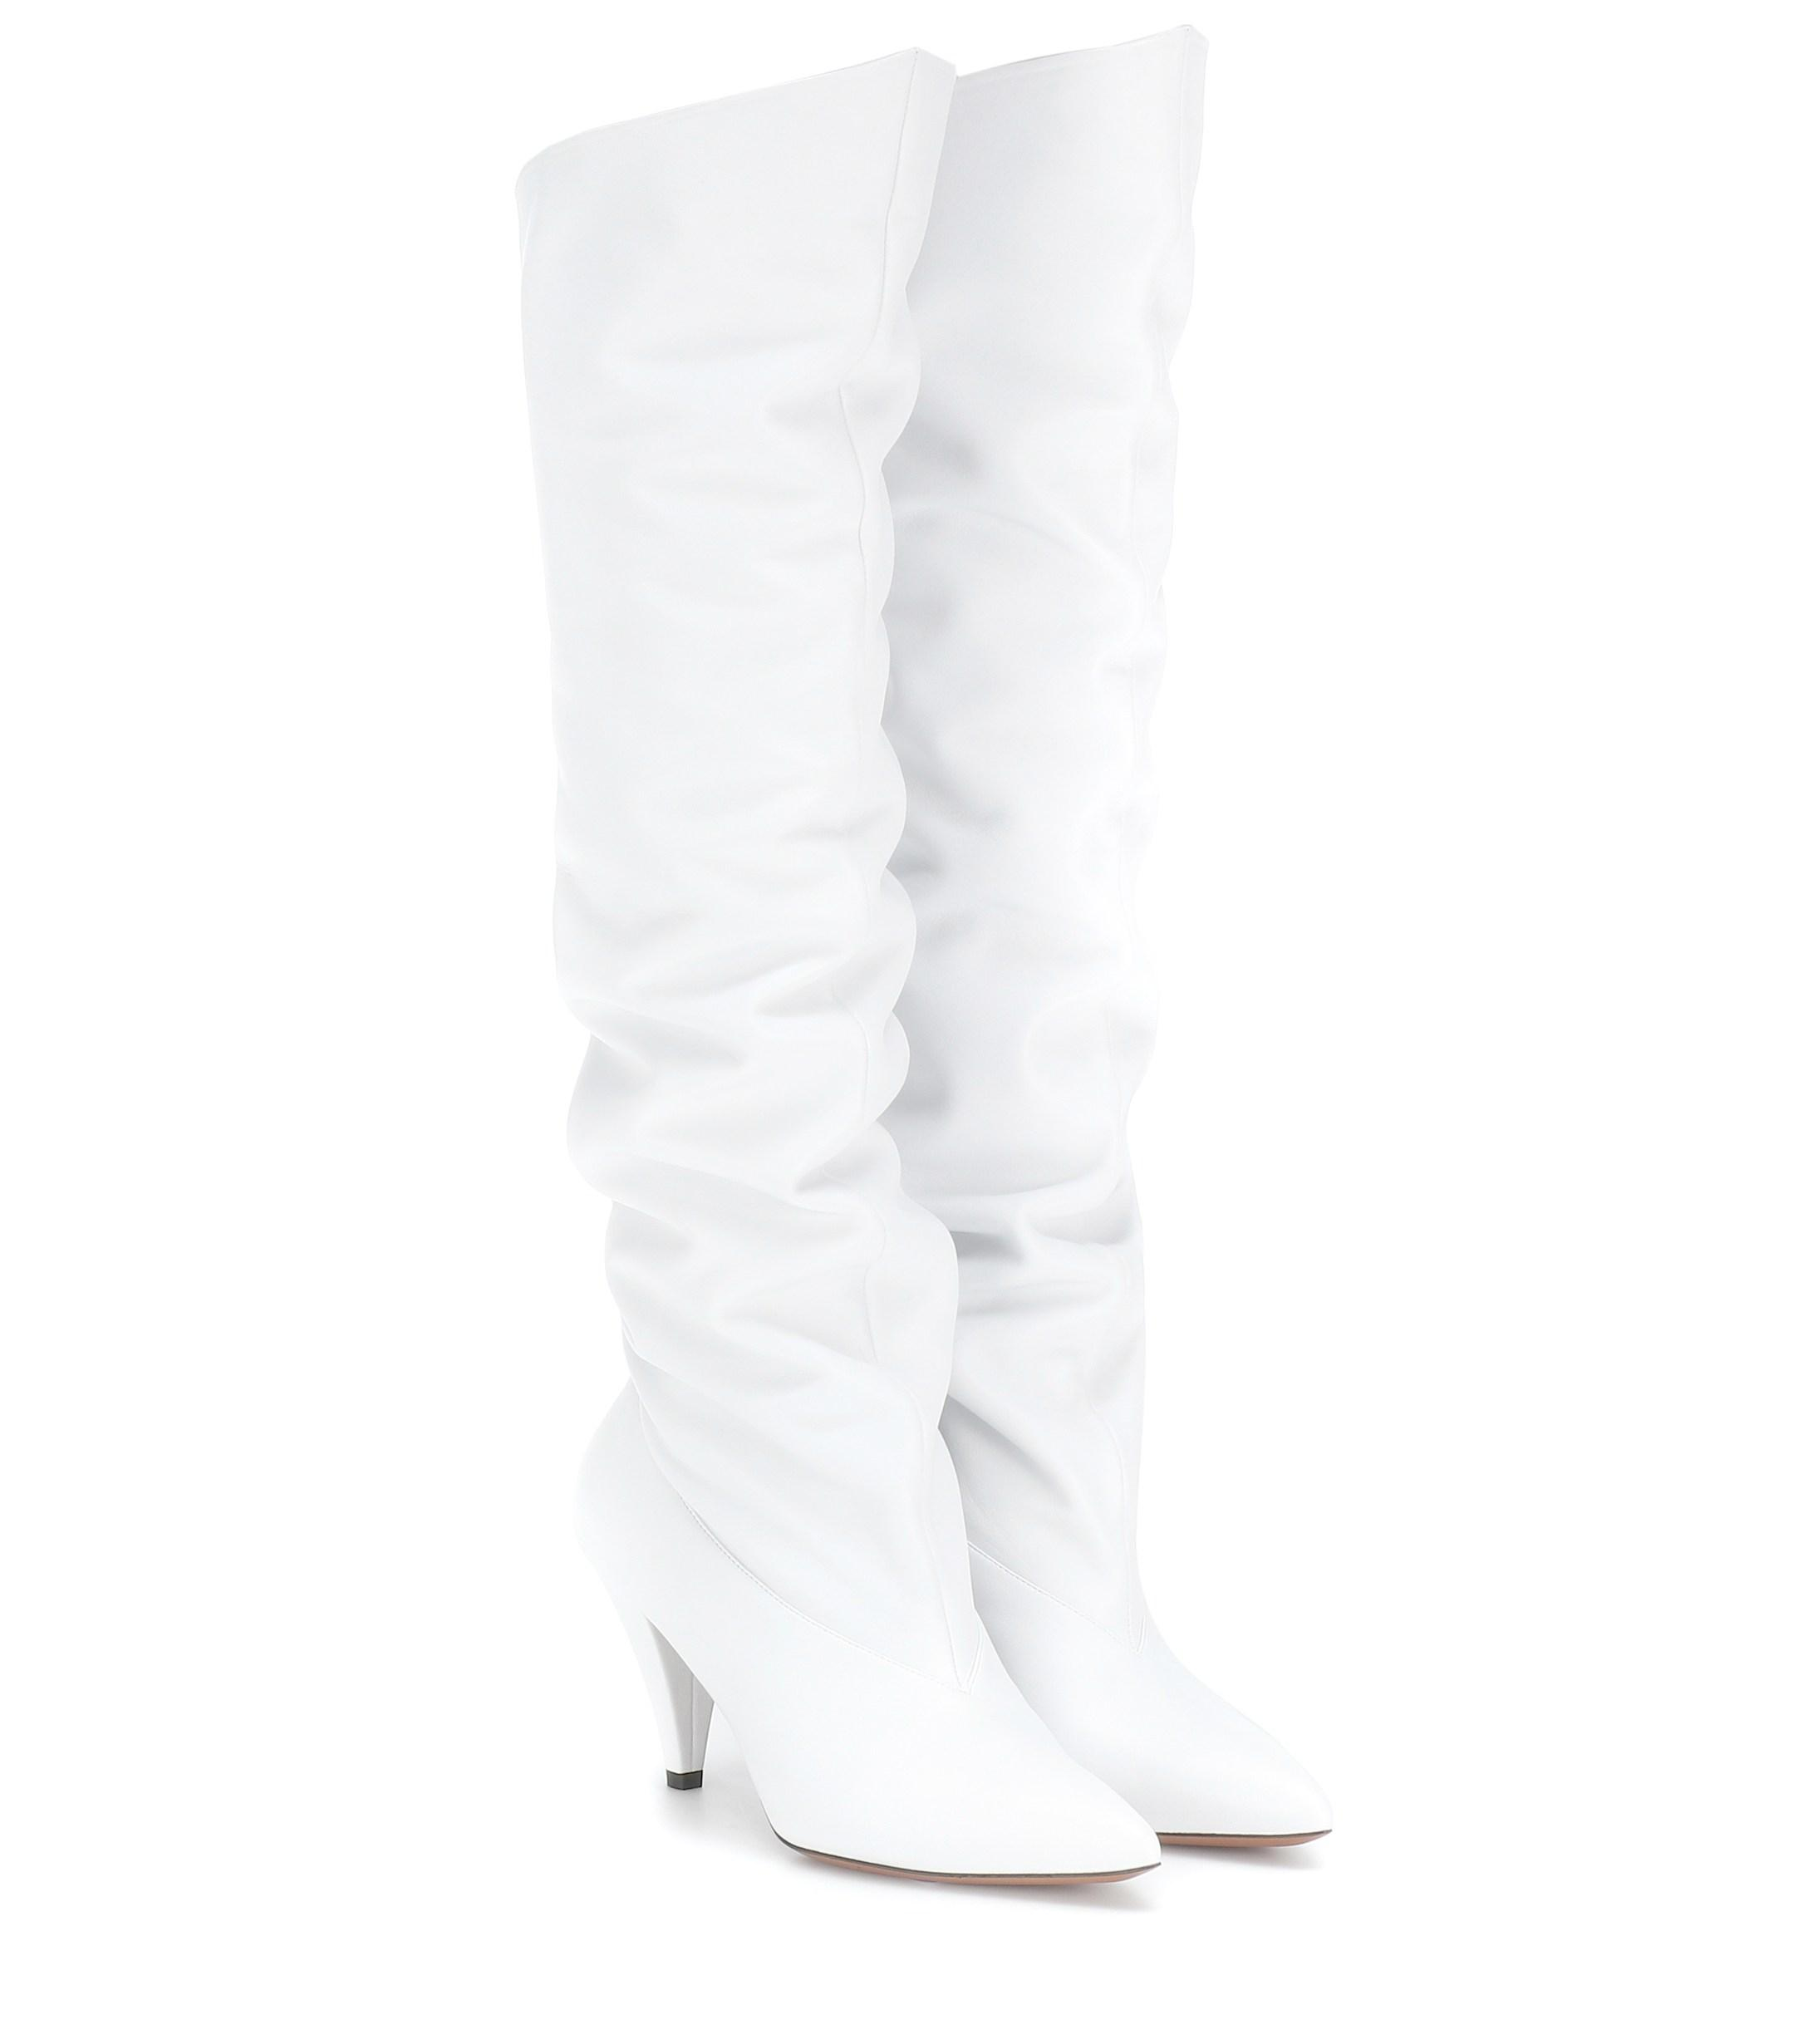 Givenchy Leather Knee-high Boots in